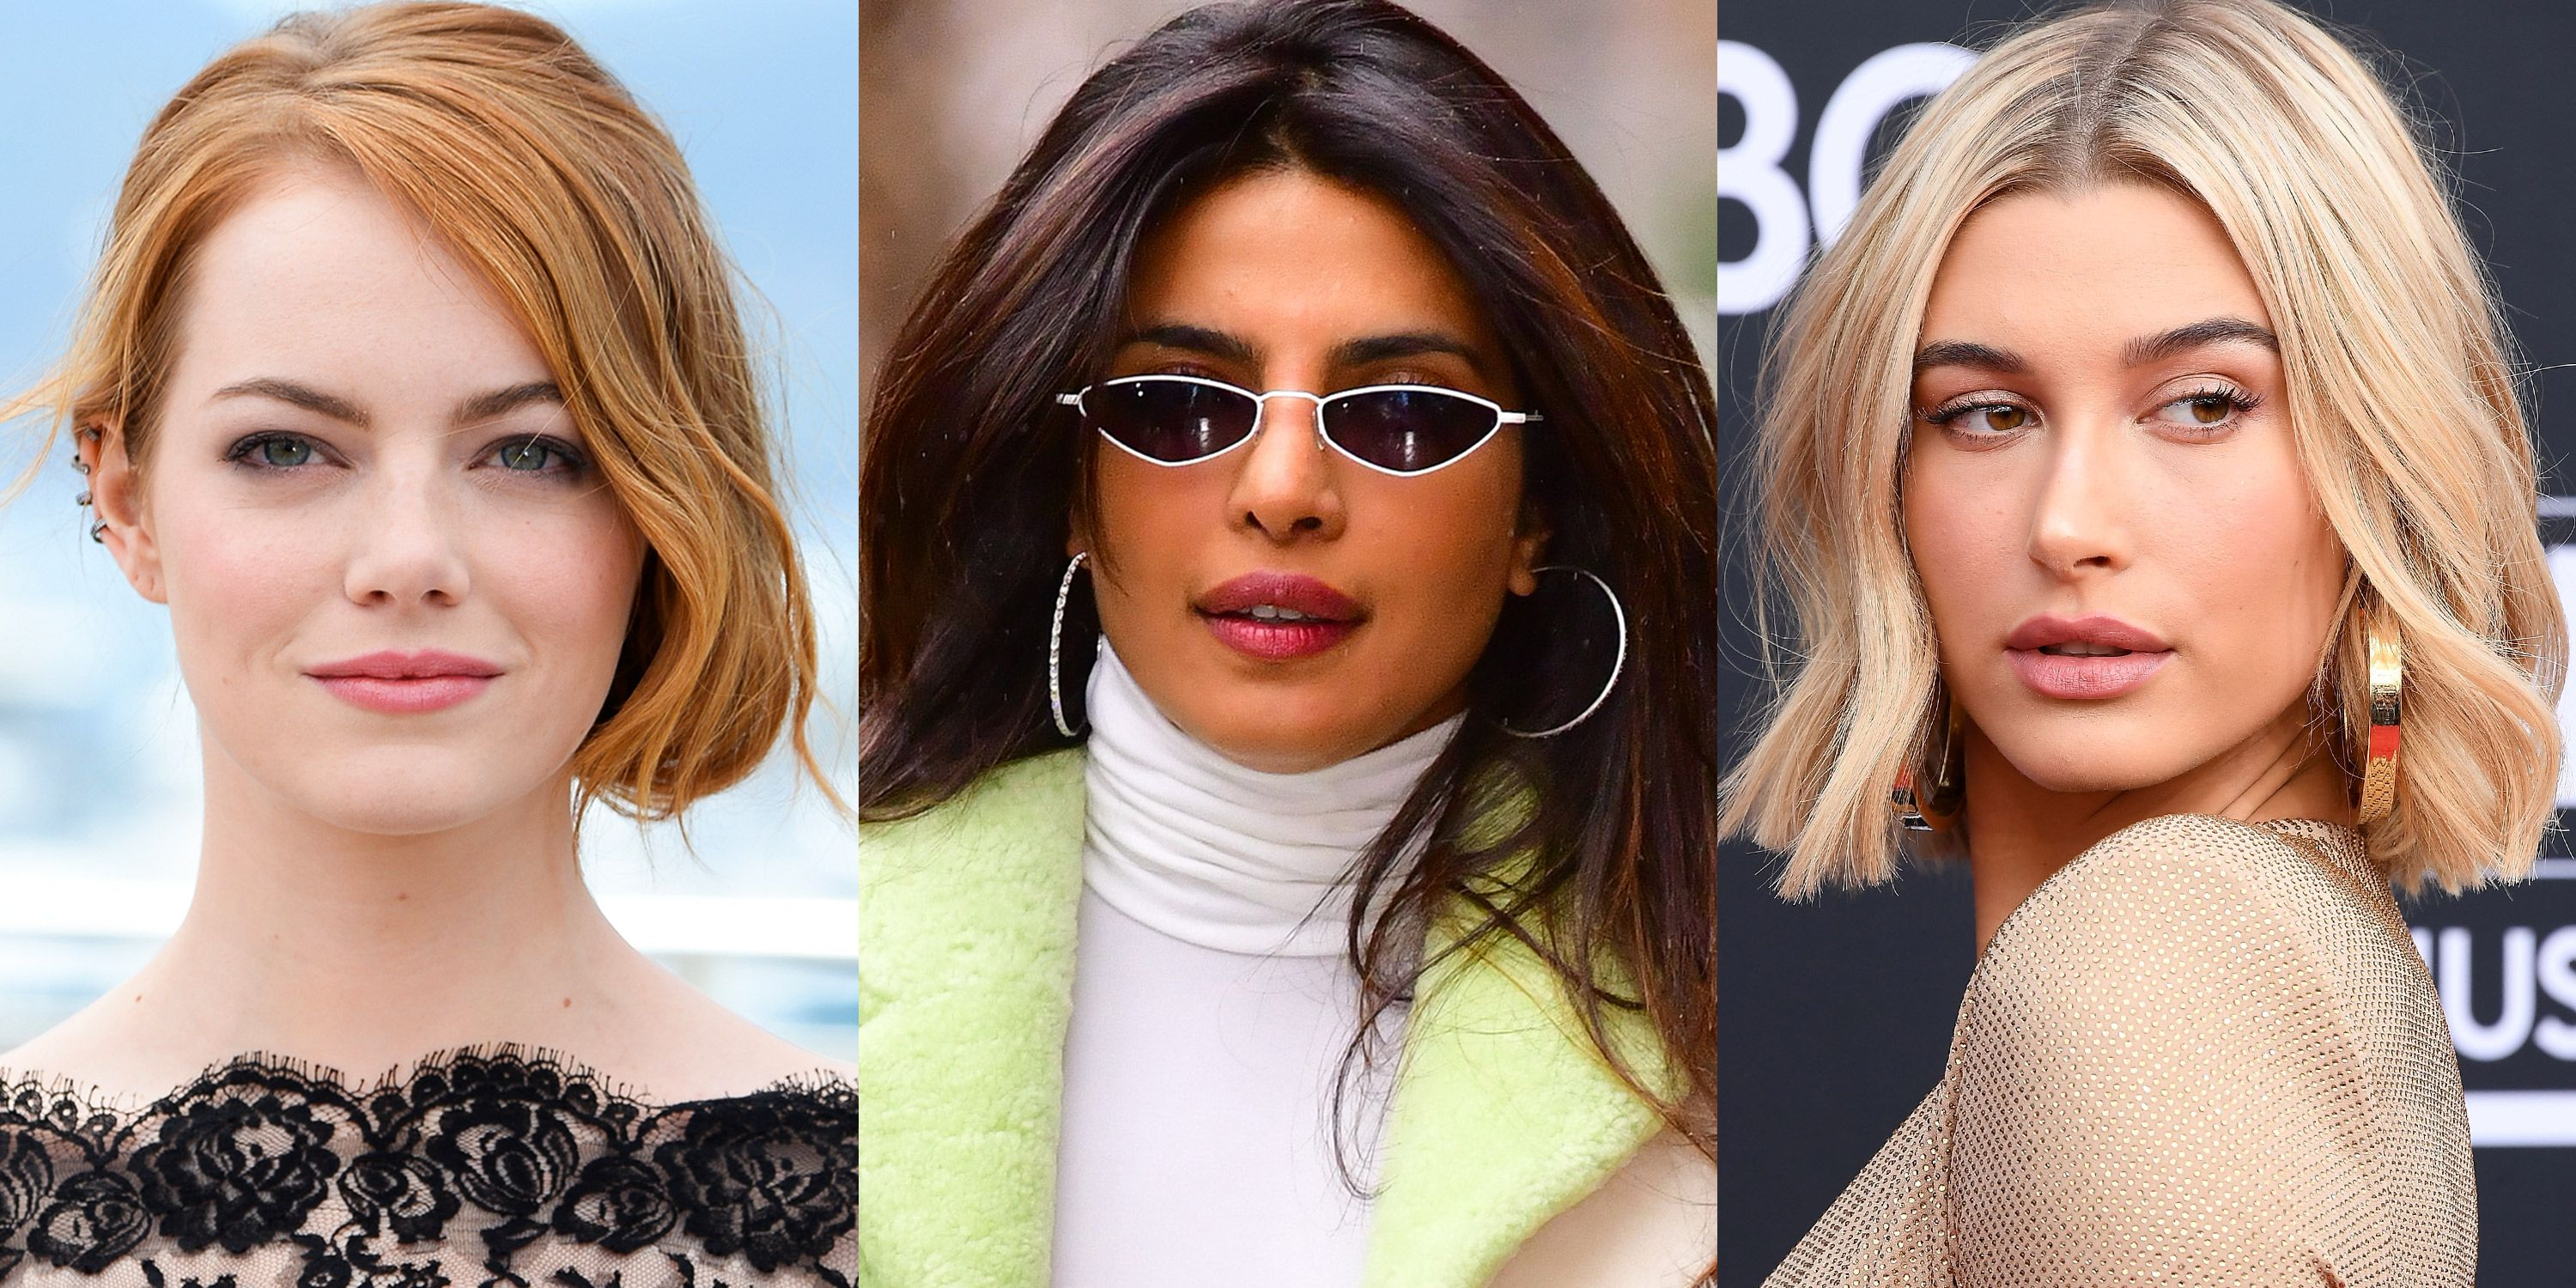 Hairstyles 2019 Female Pinterest: Best Celebrity Hair Transformations Of 2019